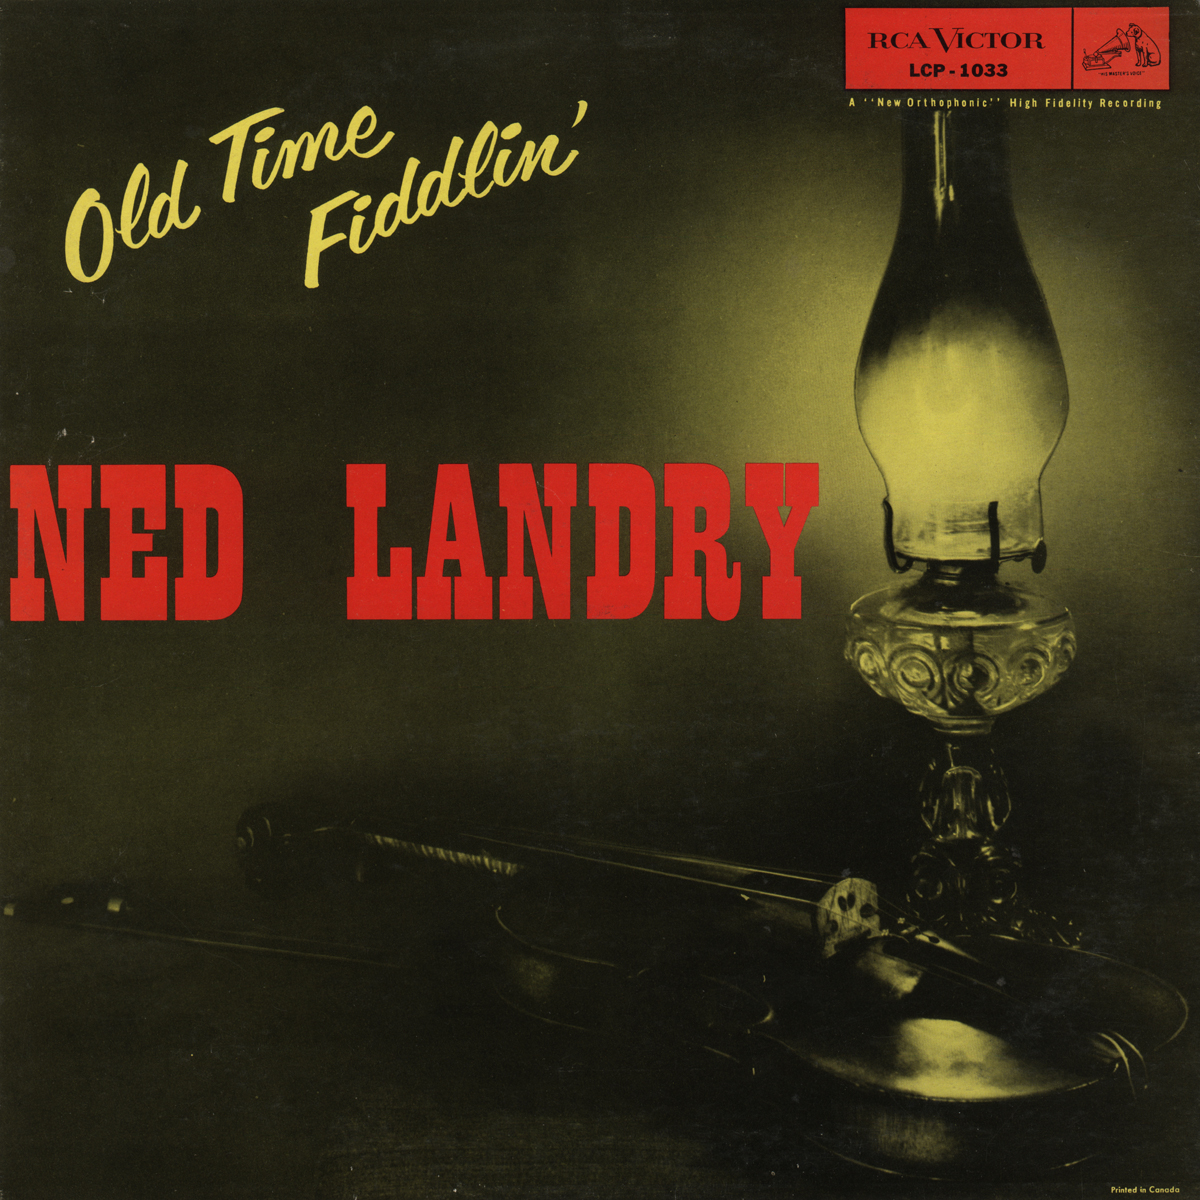 Ned Landry - Canada's Old Time Fiddling Champion